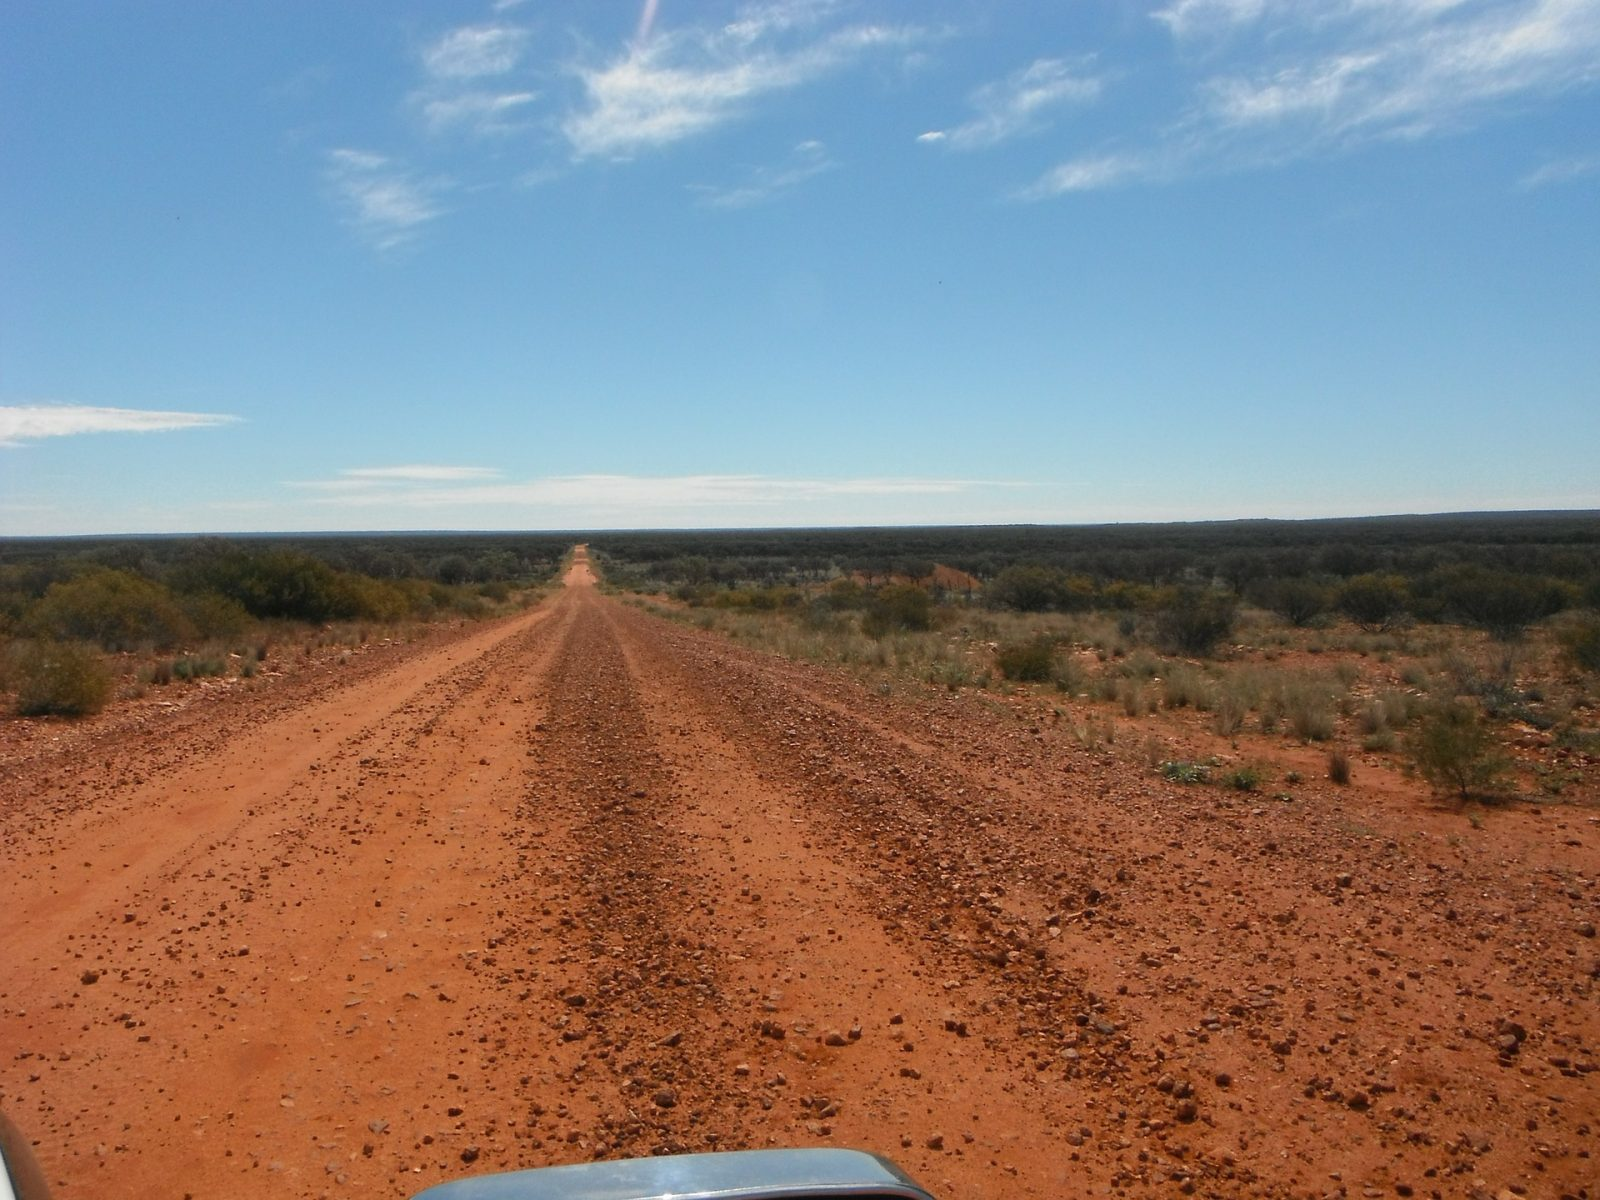 Uluru tour: Outback road